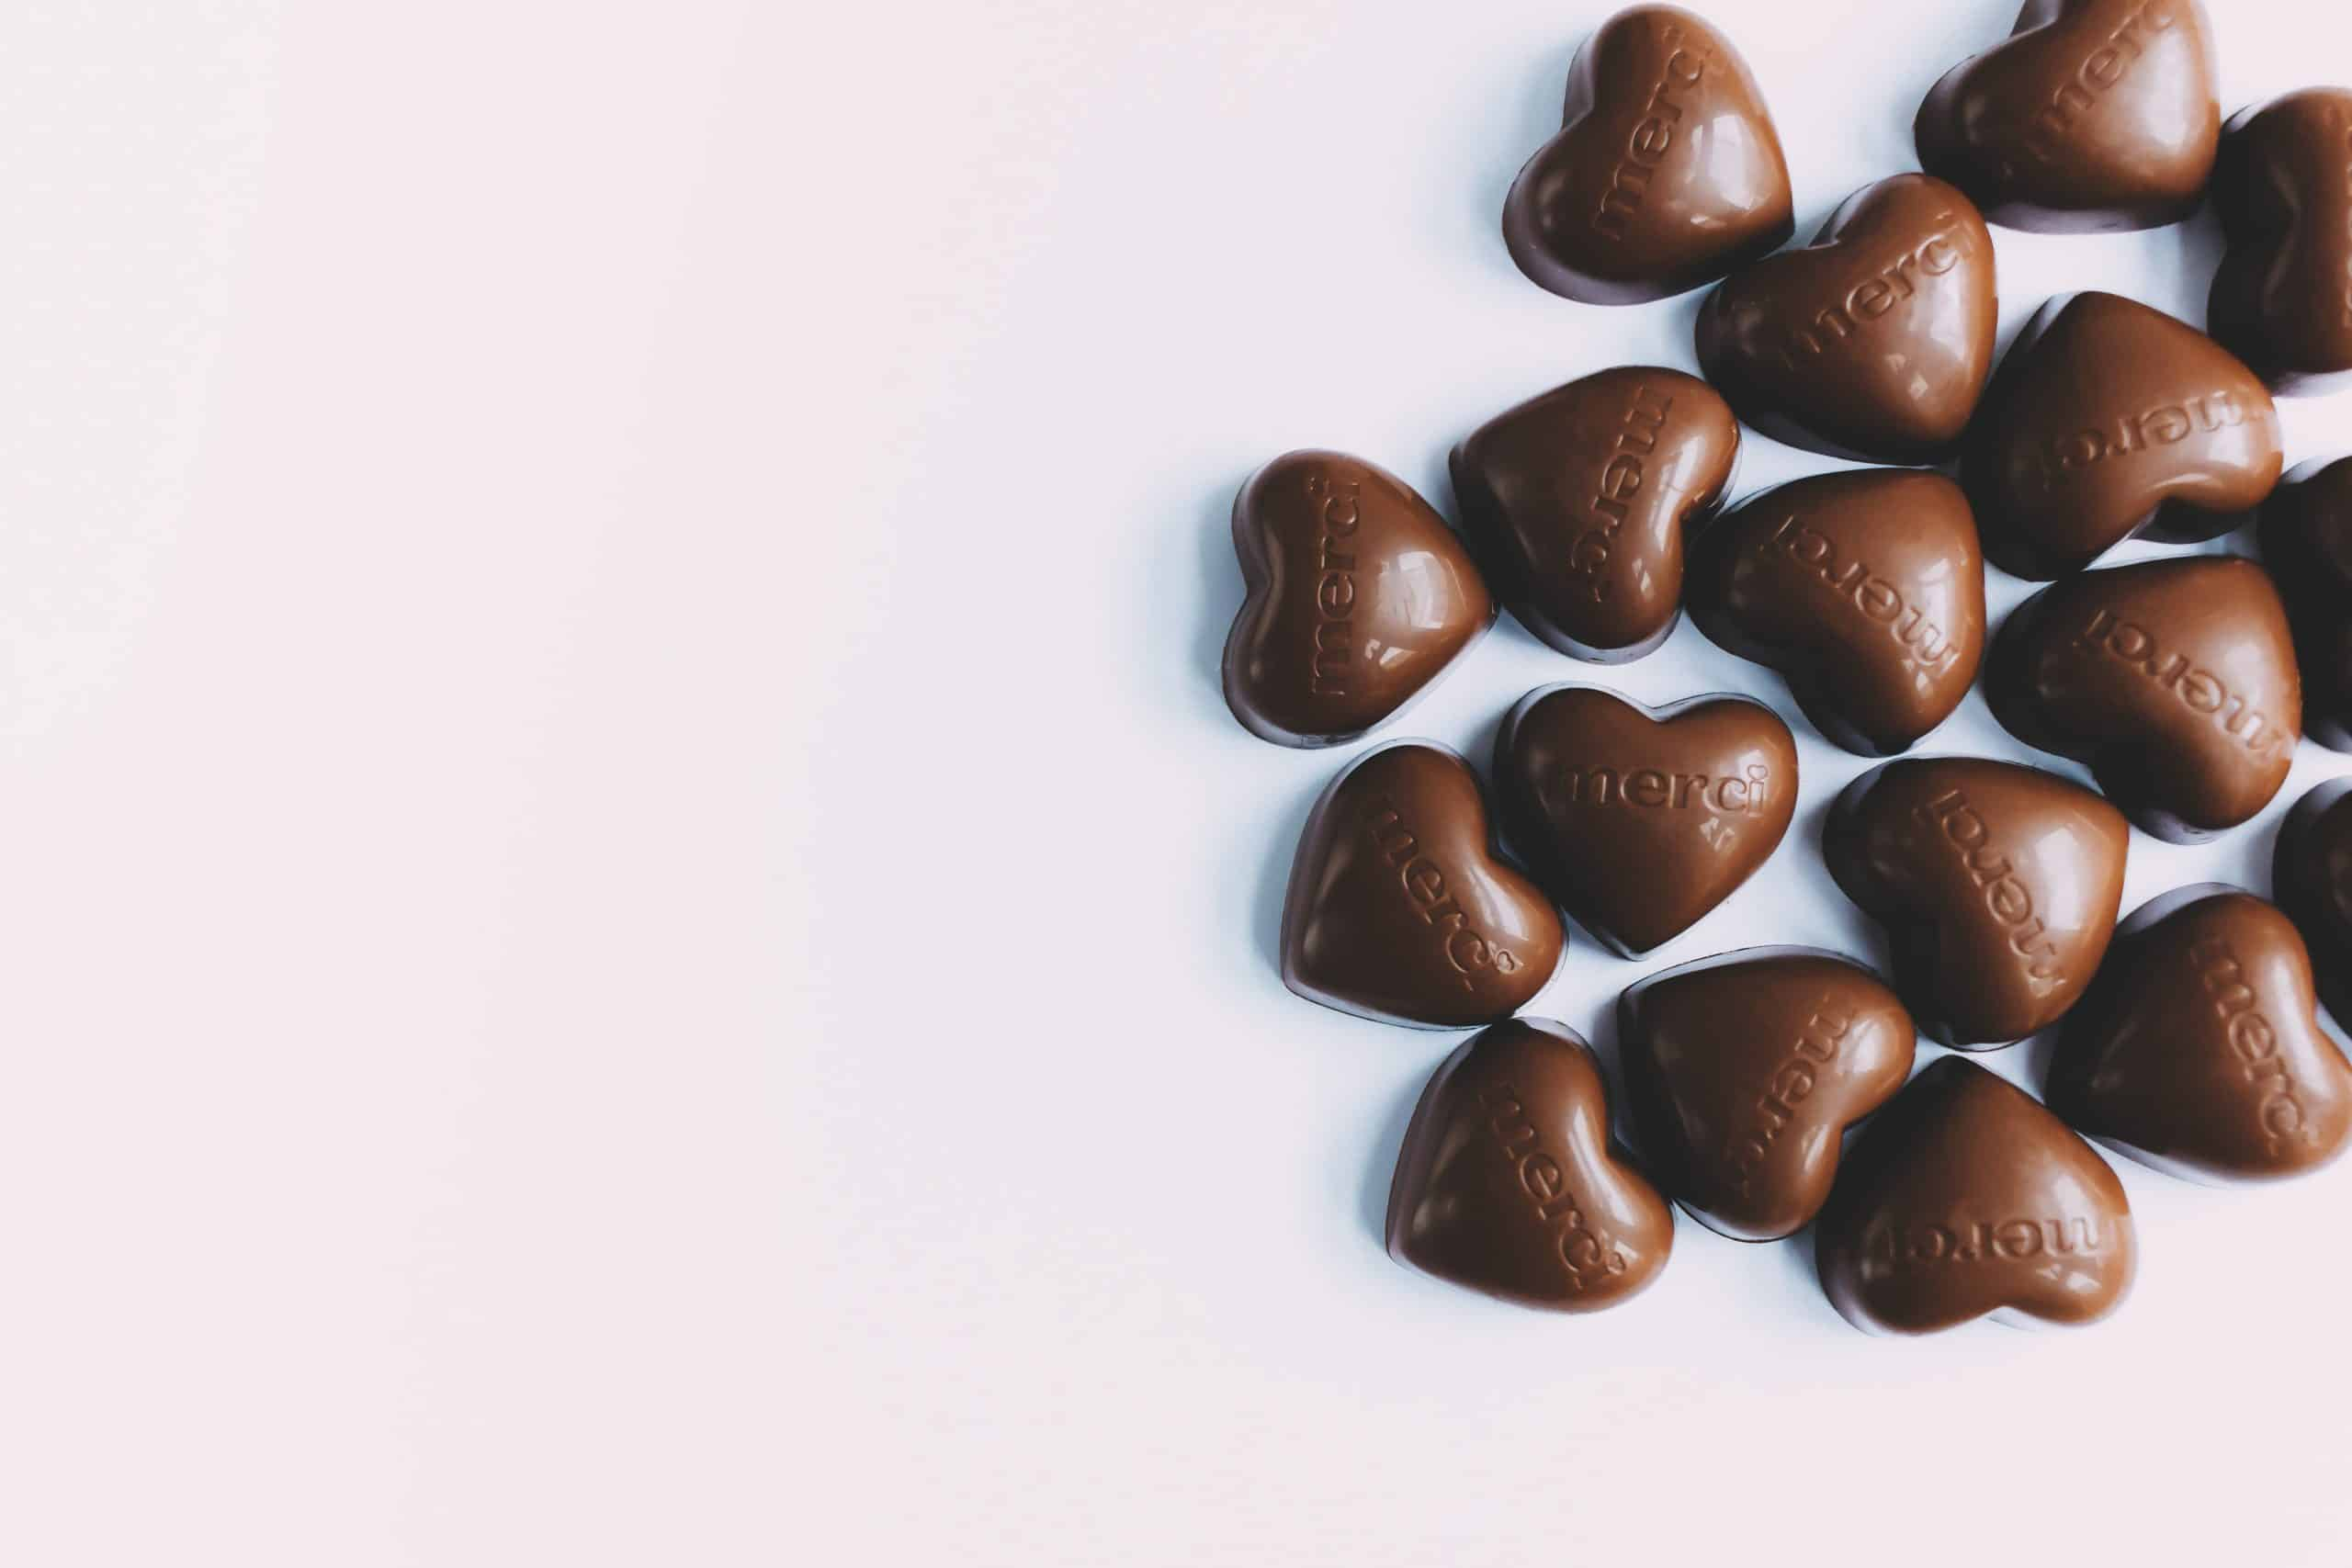 Some Things You Need to Know About Dark Chocolate